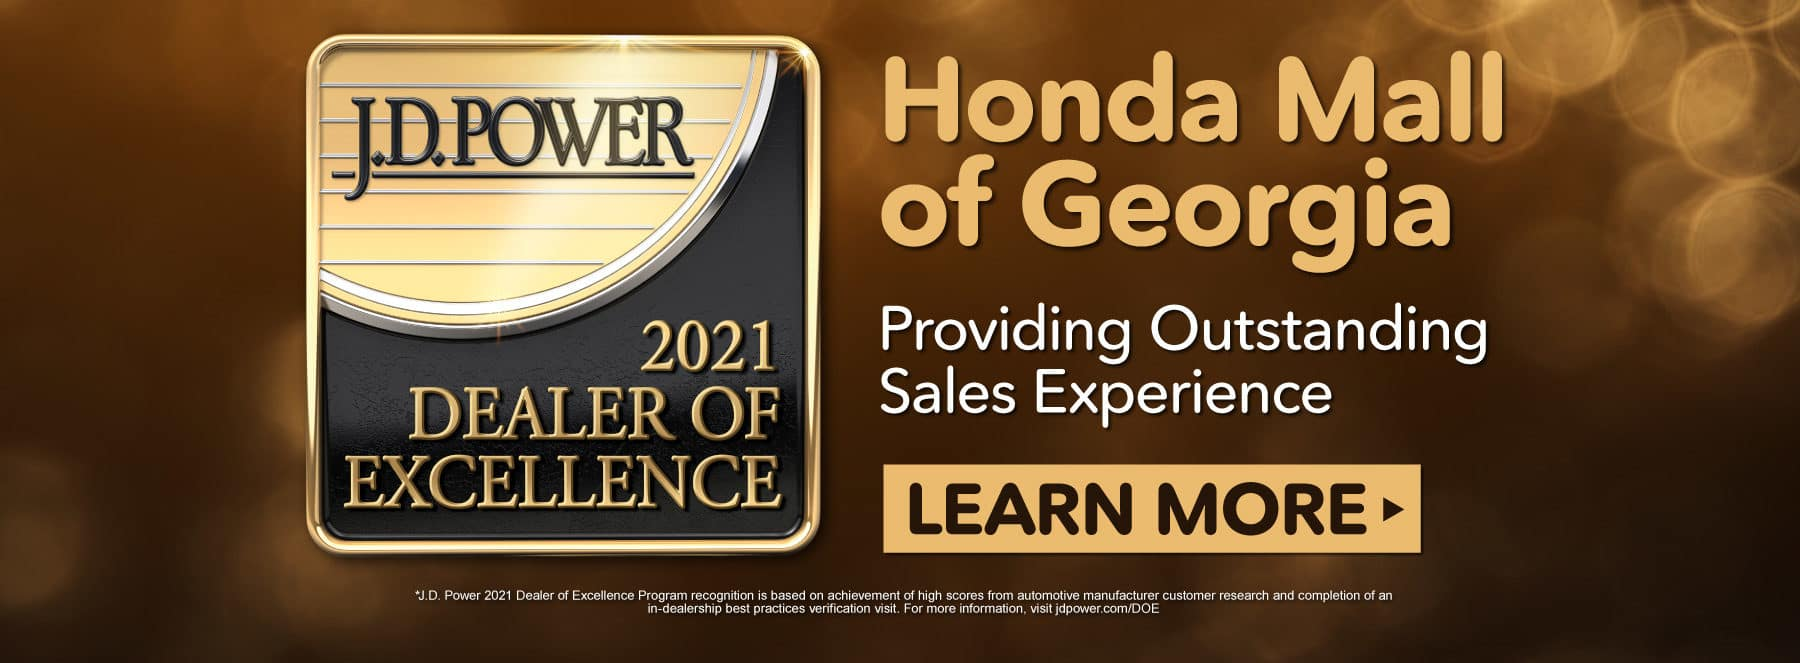 Honda Mall of Georgia is a 2021 Dealer of Excellence | Click to Learn More